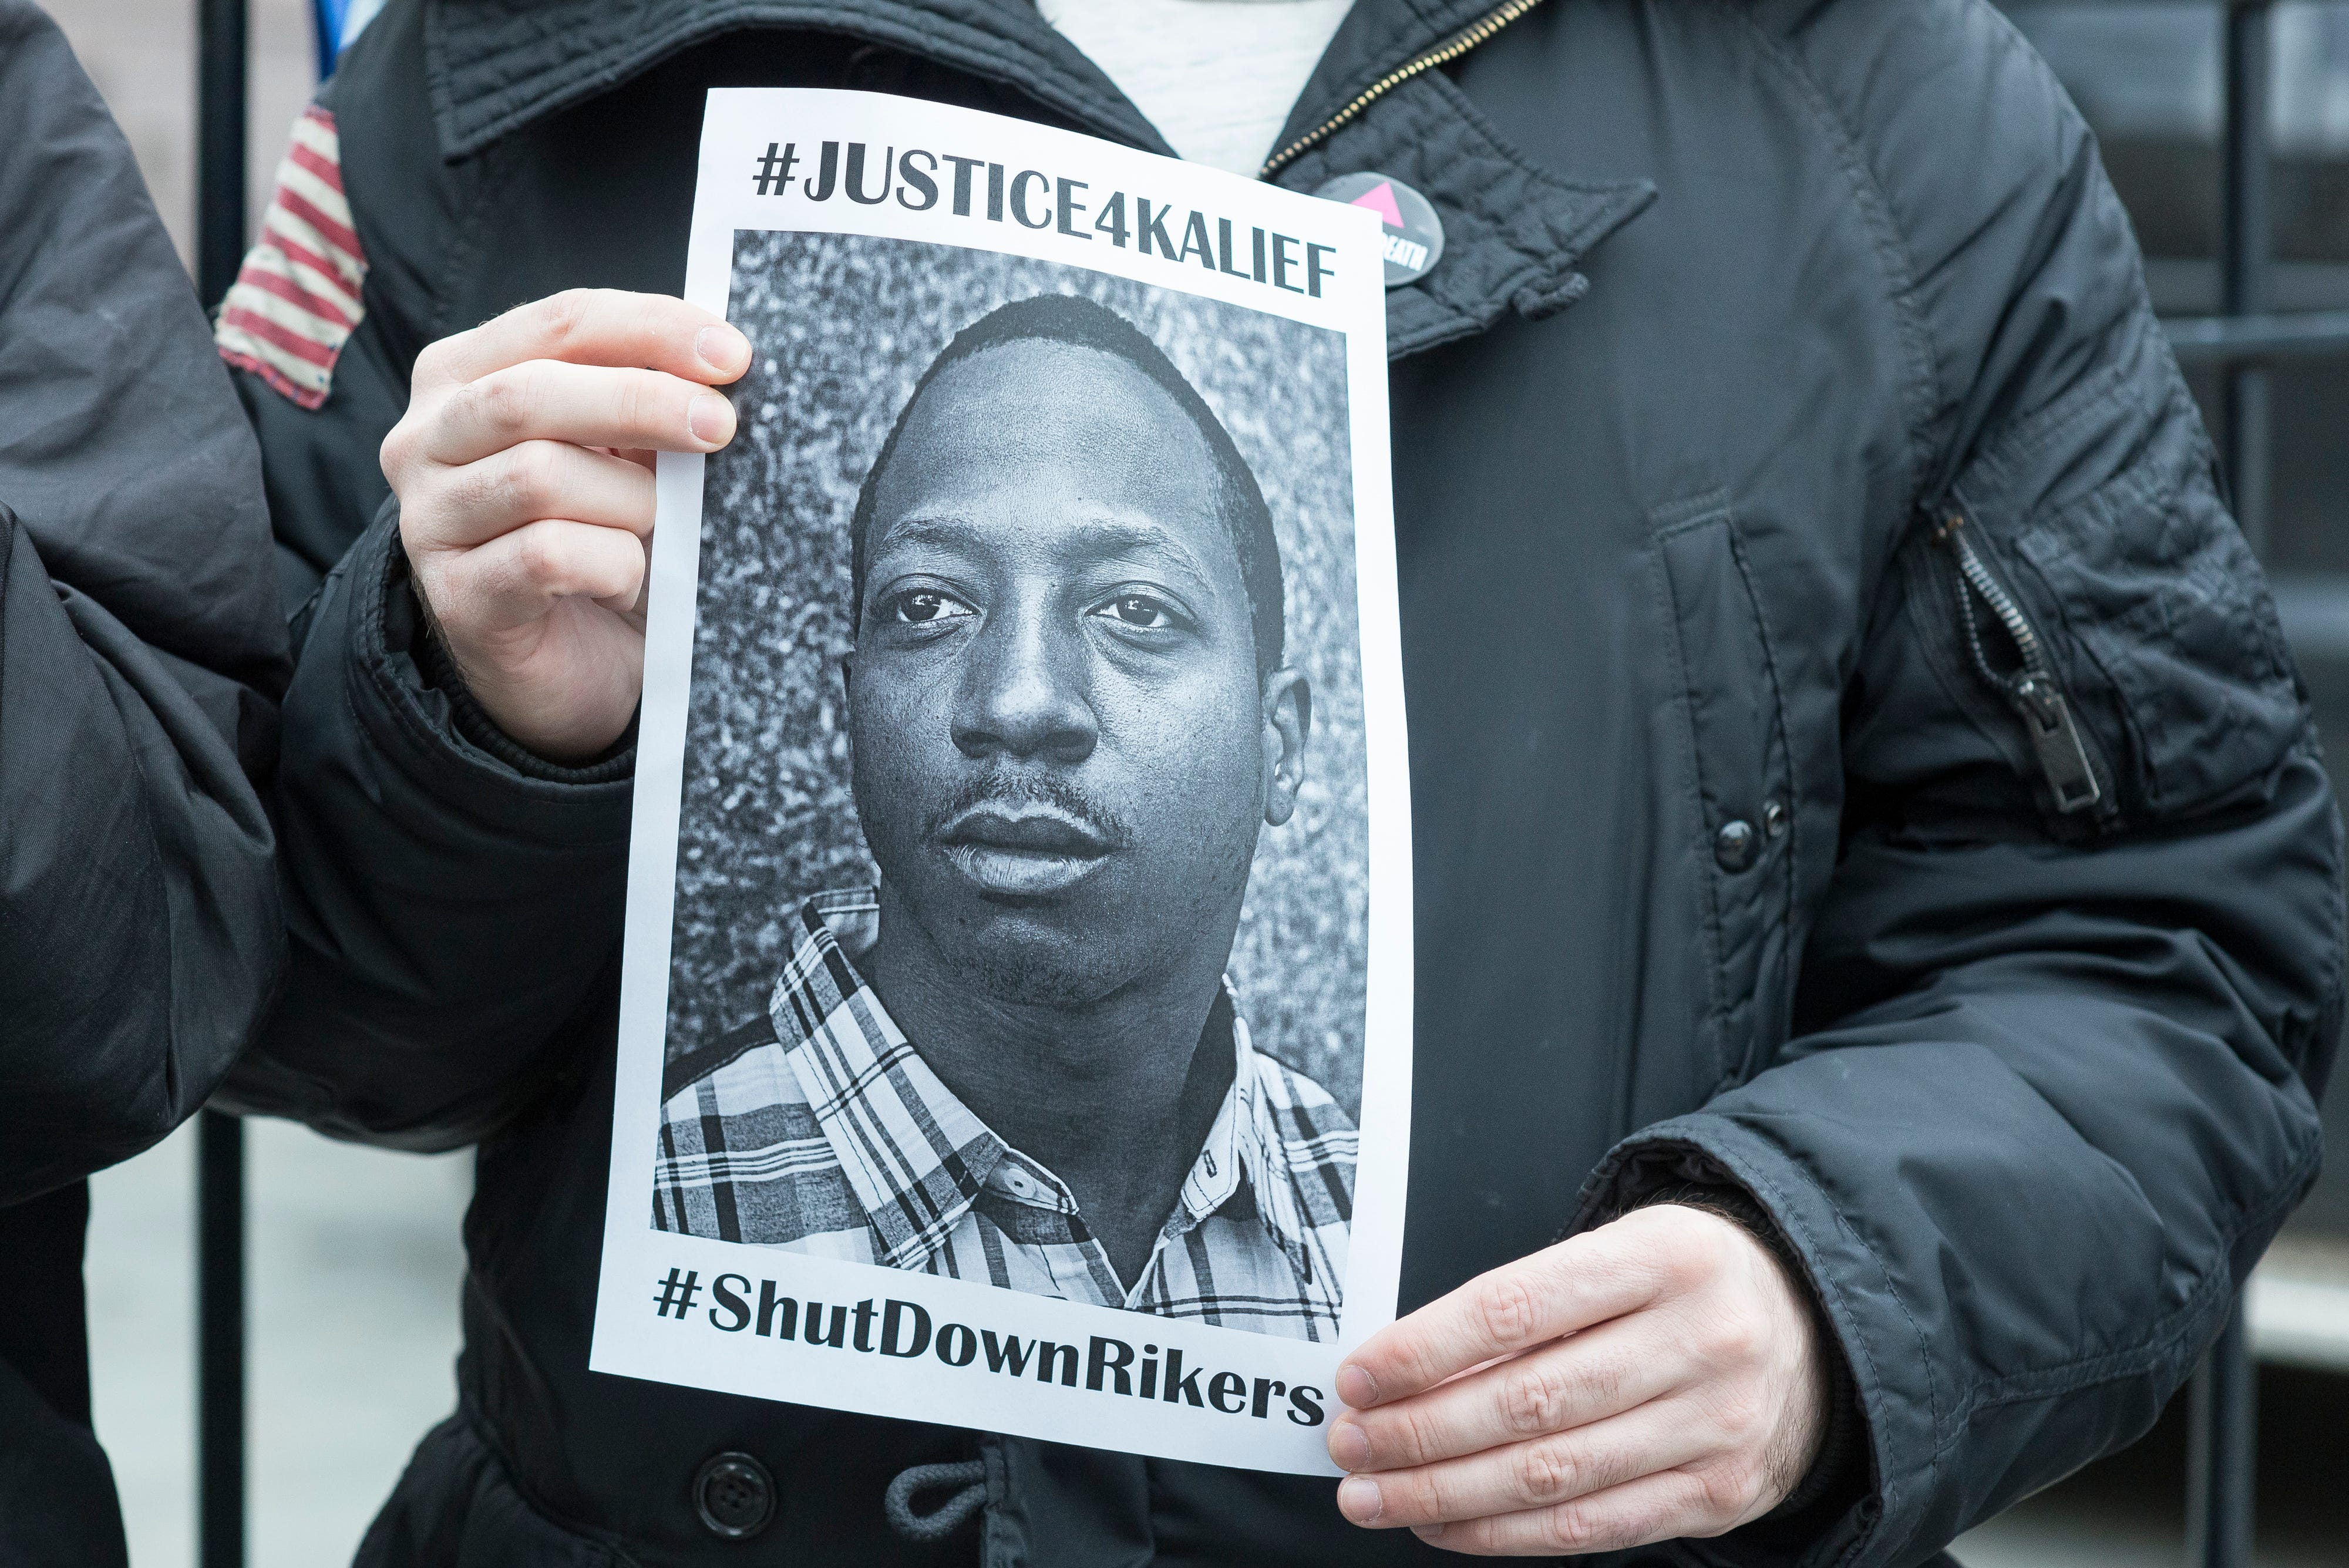 After Kalief Browder's suicide, my mom died trying to